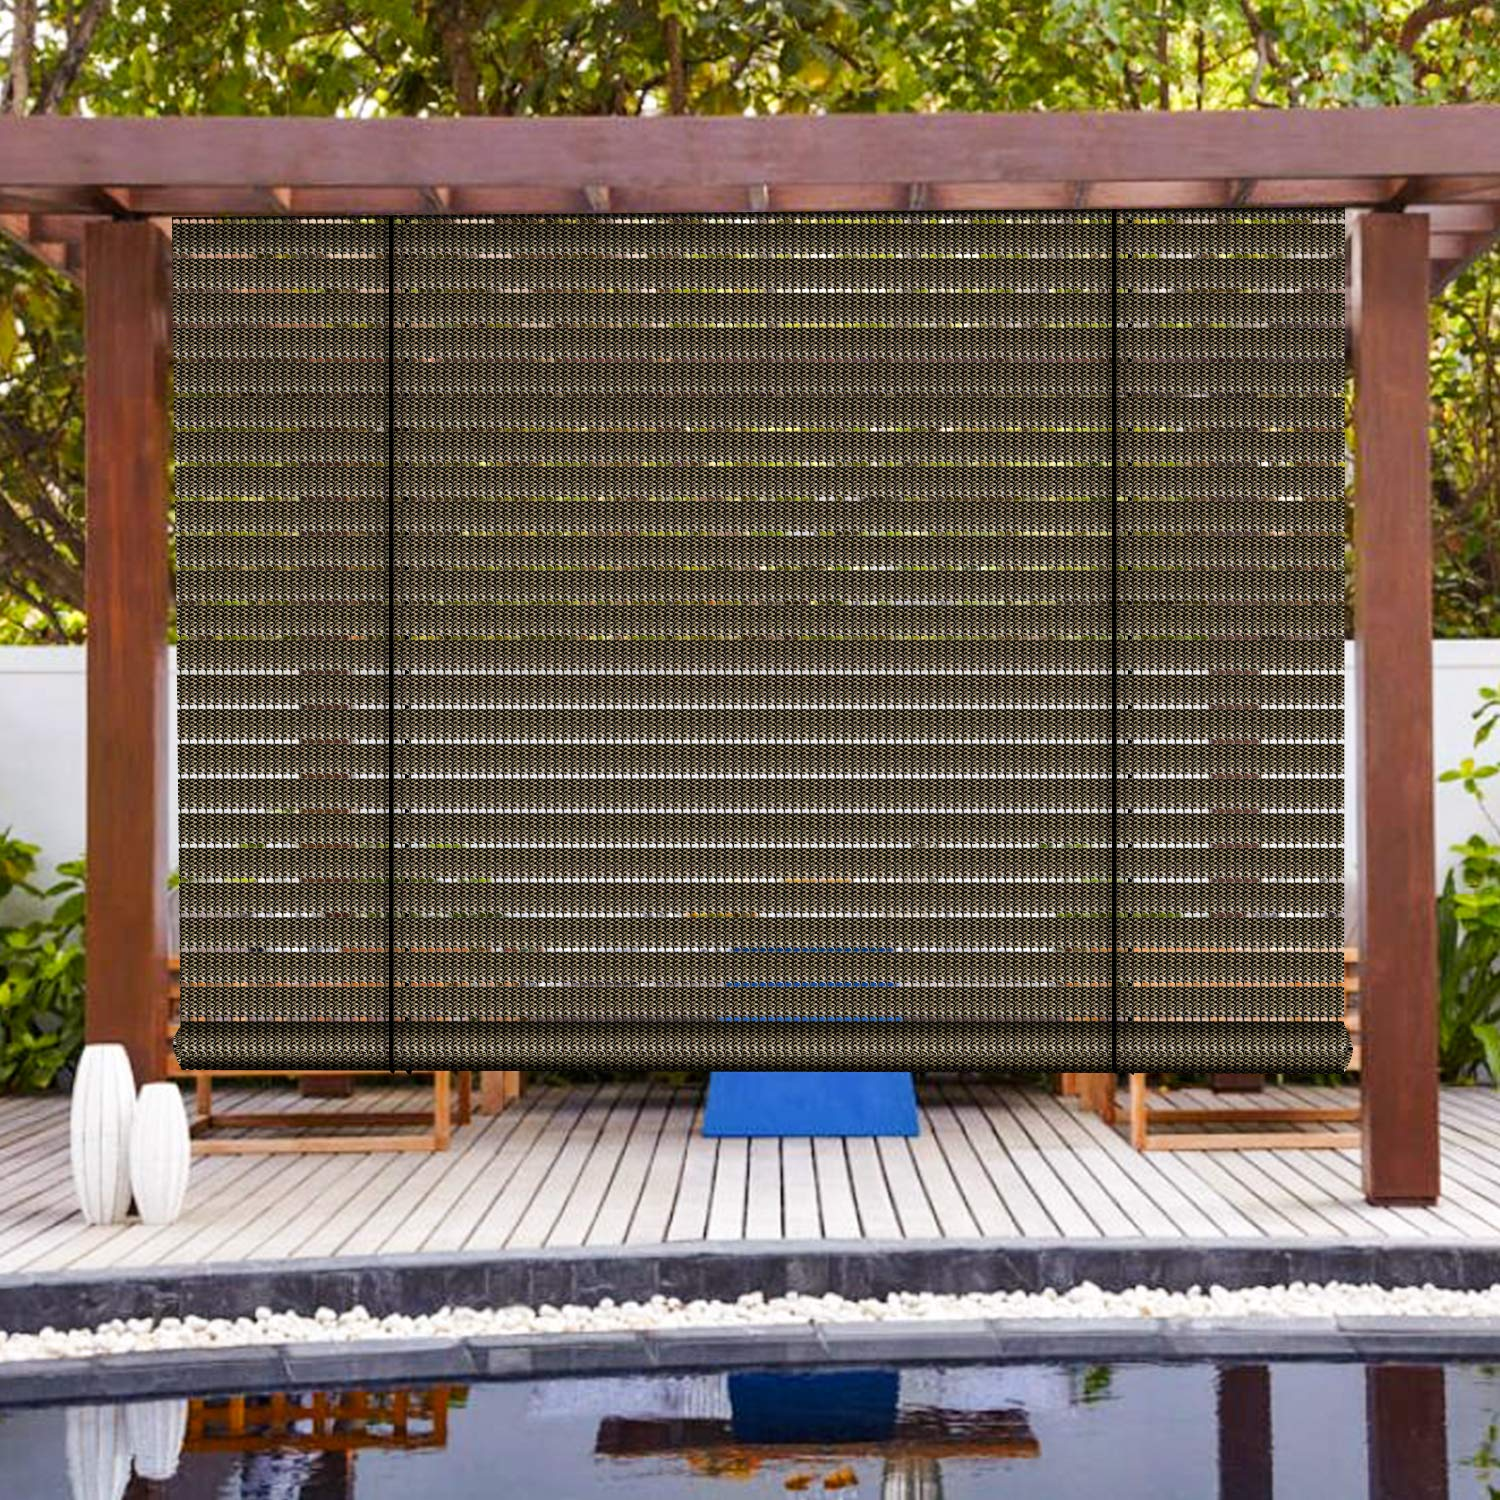 Patio Paradise Exterior Outdoor Roll up Shades Blinds Roller Shade 6Wx6H for Porch Deck Balcony Pergola Carport Light Filtering Hollow Out Striped Brown